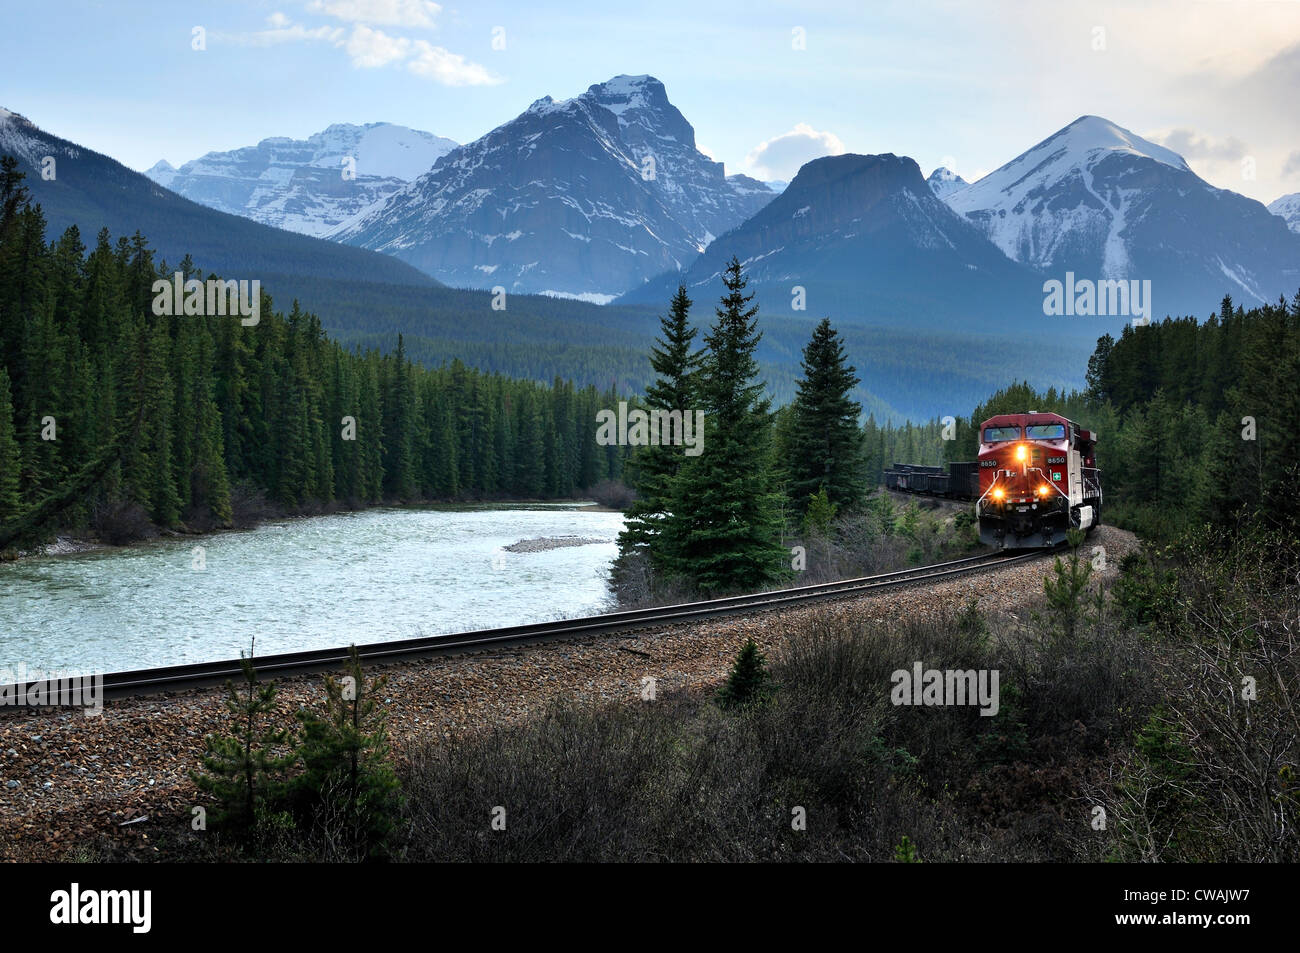 Eastbound train and Bow Range, Banff National Park, Alberta, Canada - Stock Image